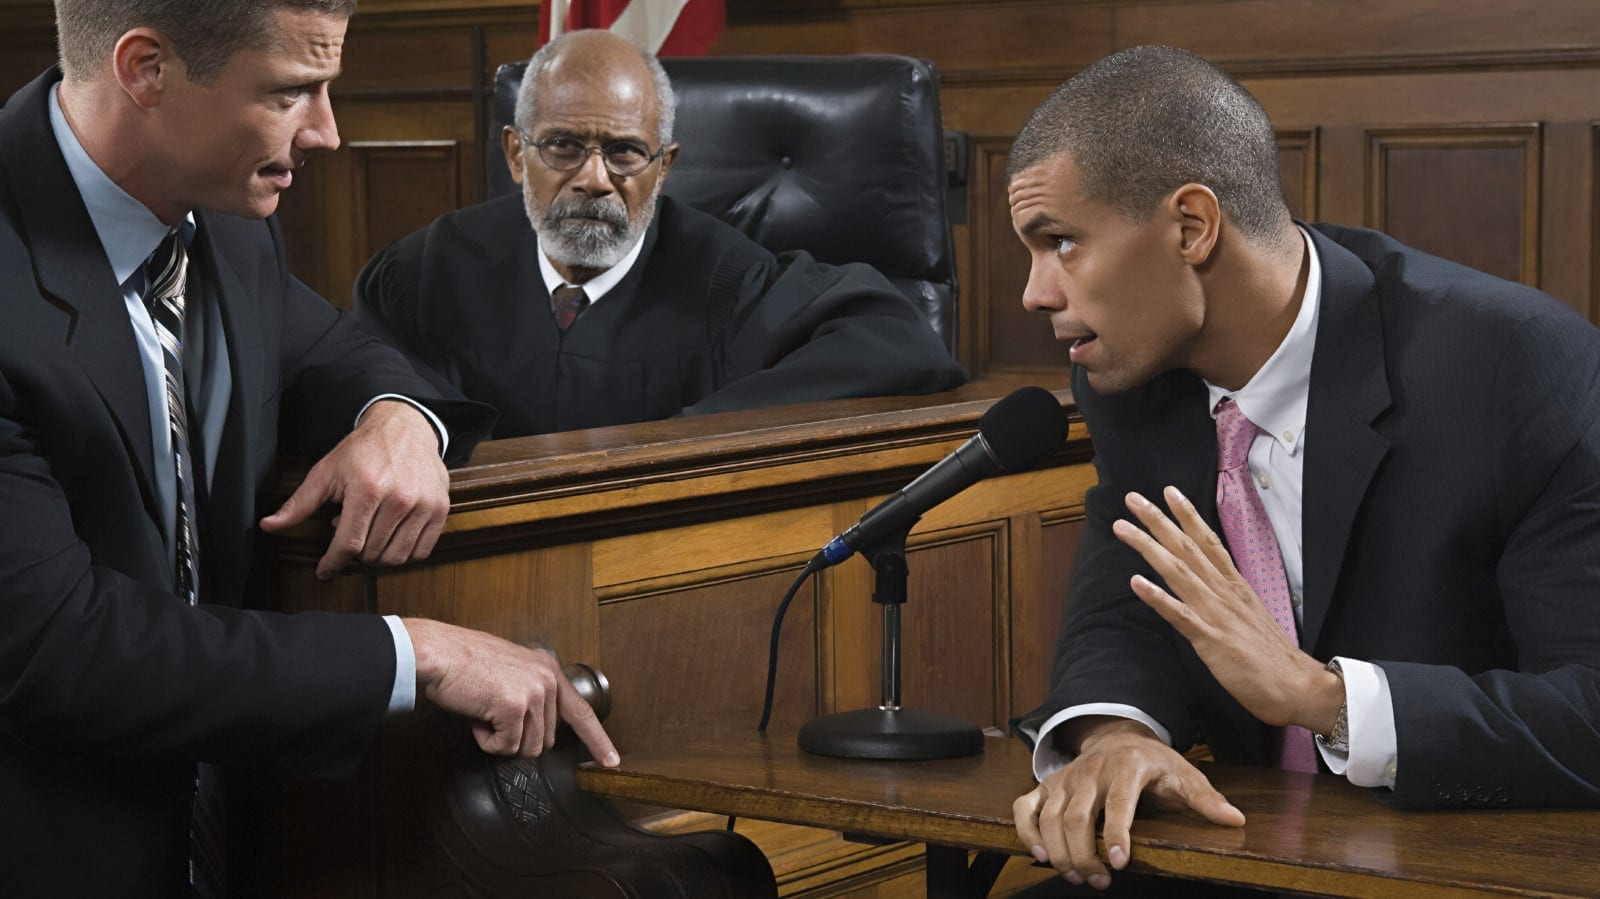 Man Being Asked Questions By An Attorney In A Courtroom